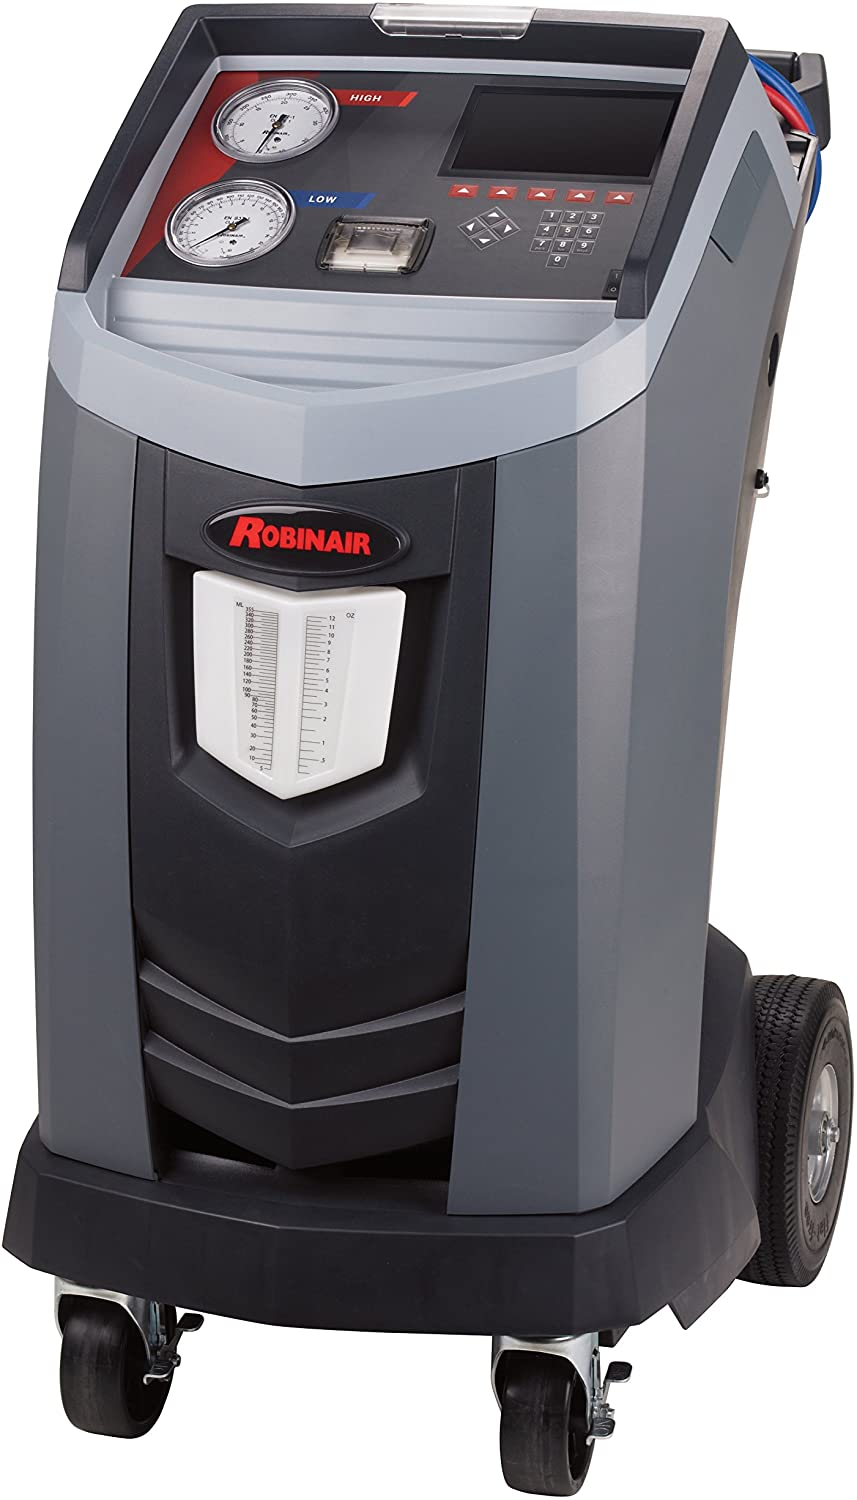 Robinair Ac Machine >> Robinair 34988ni Premium Refrigerant Recover Recycle Recharge Machine For Automotive A C Systems